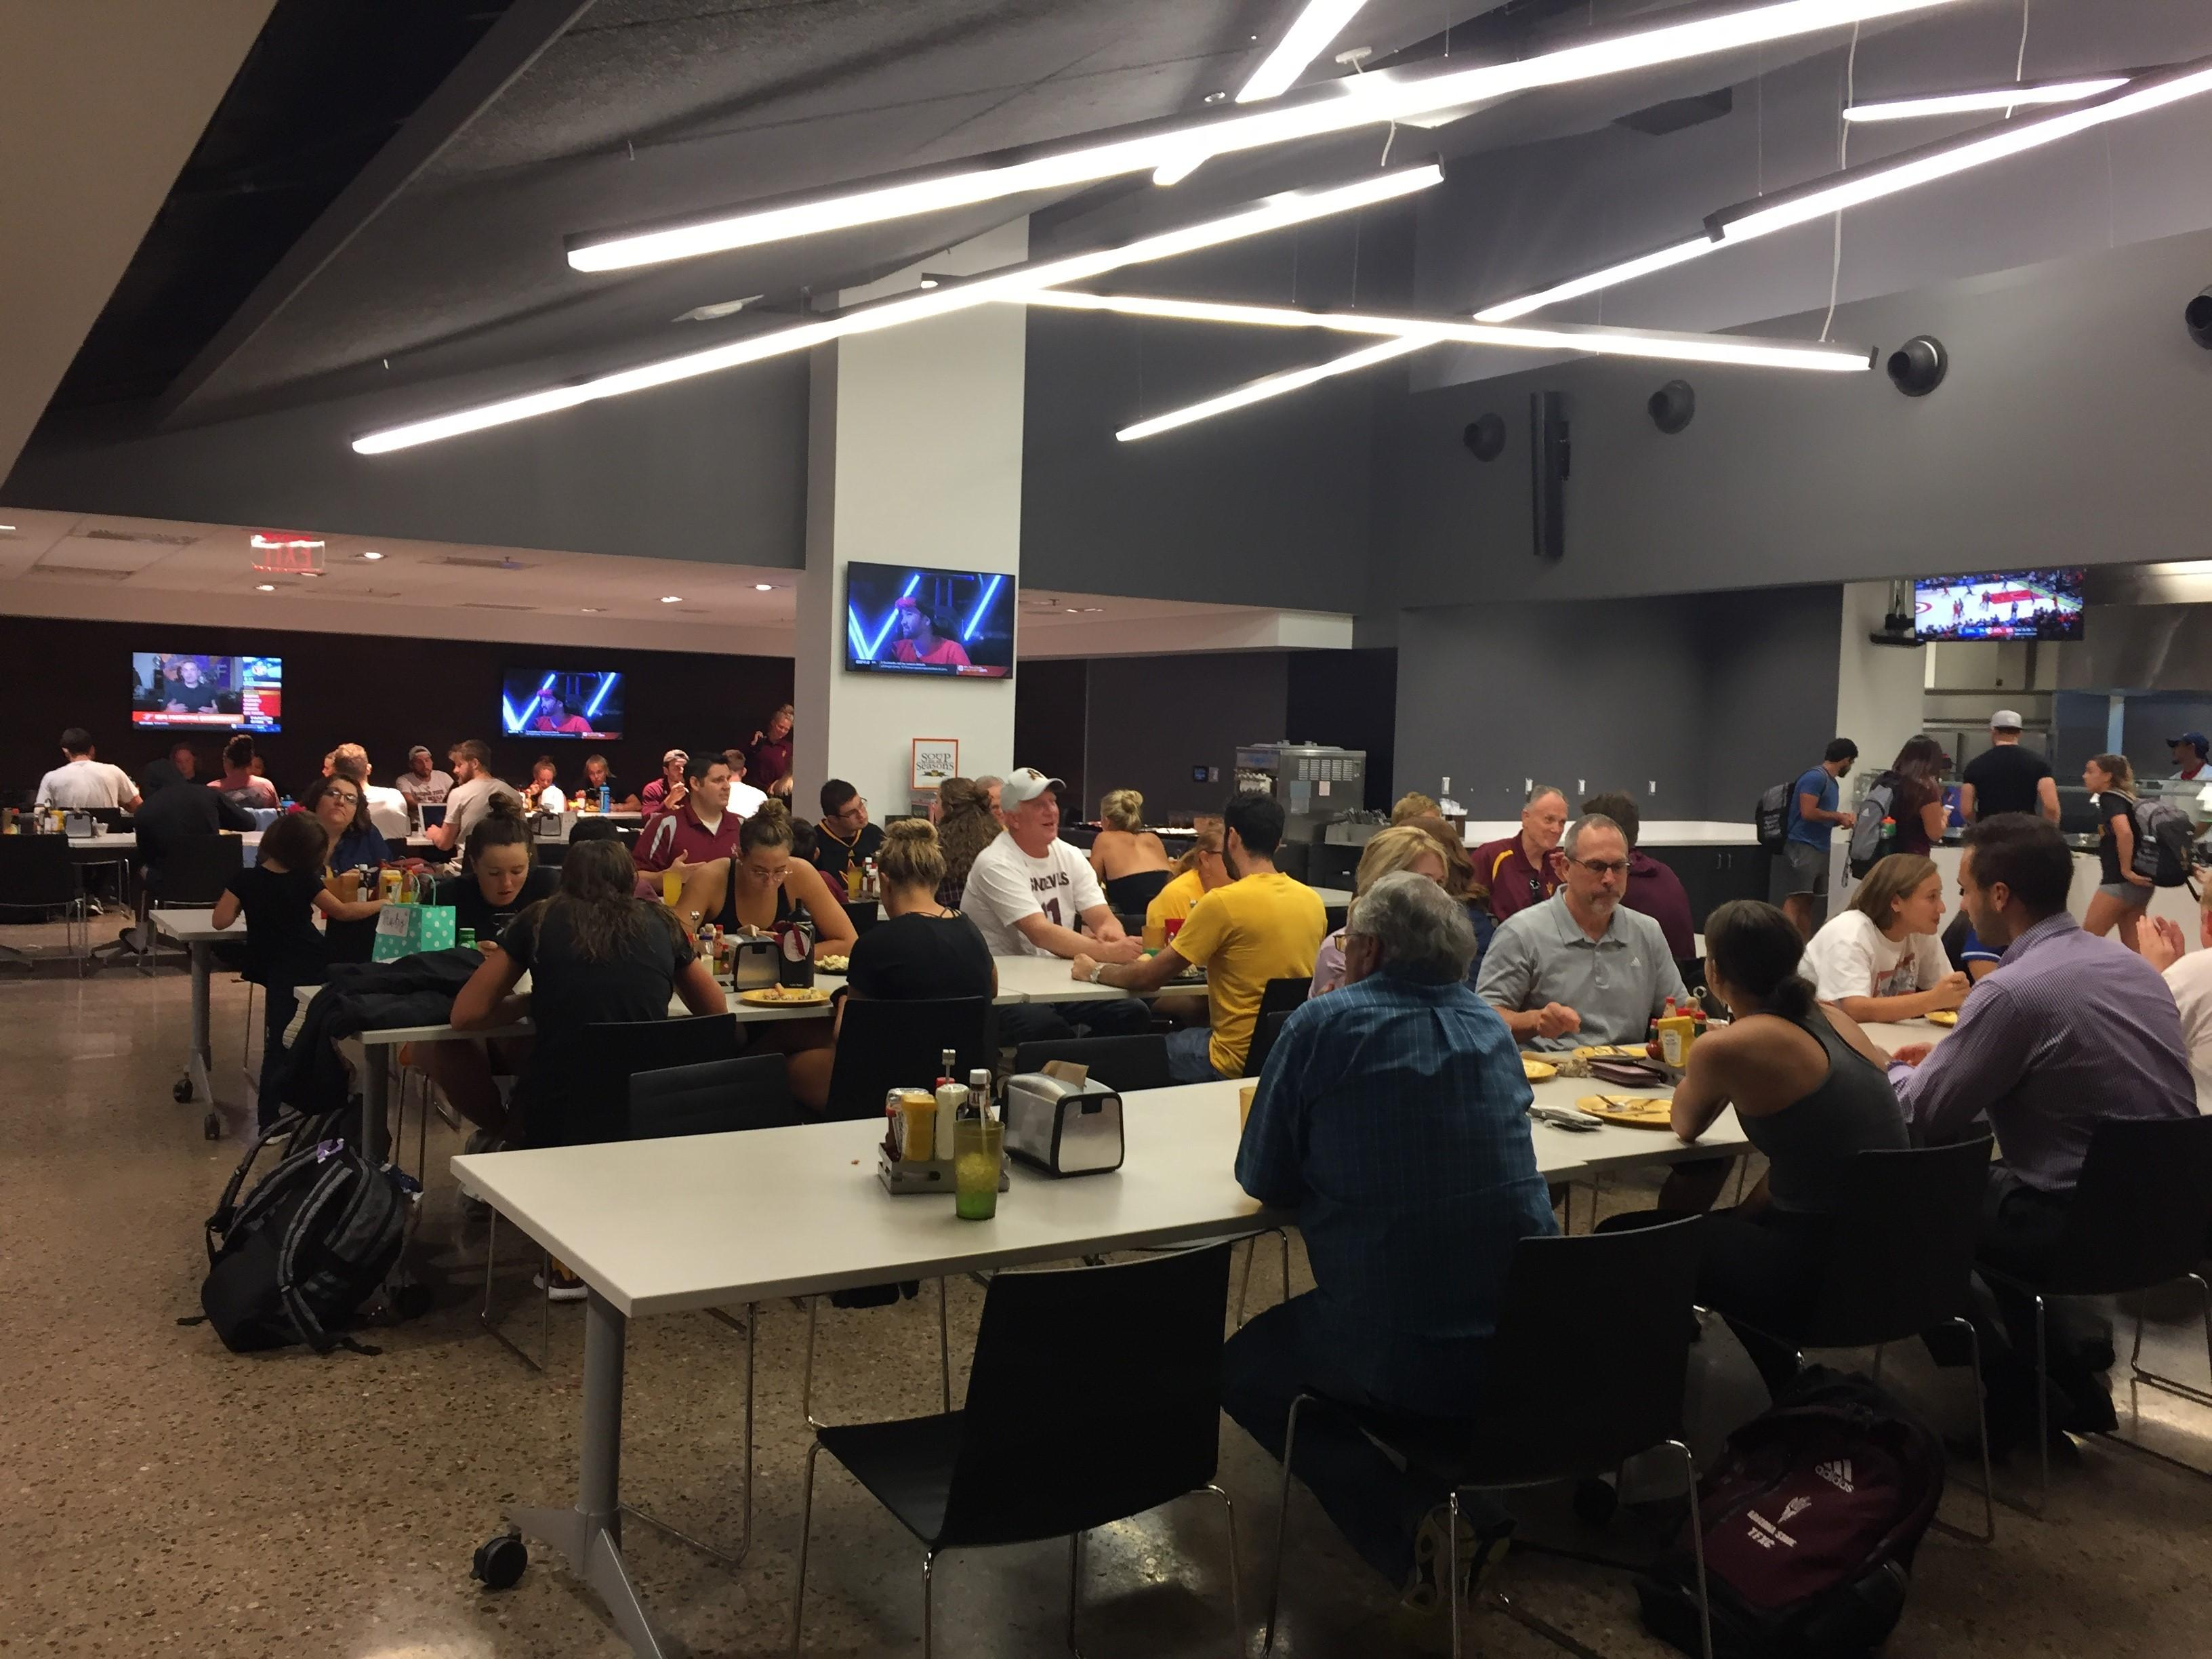 Sun Devil Club hosts family dinner for supporters in Student-Athlete Facility